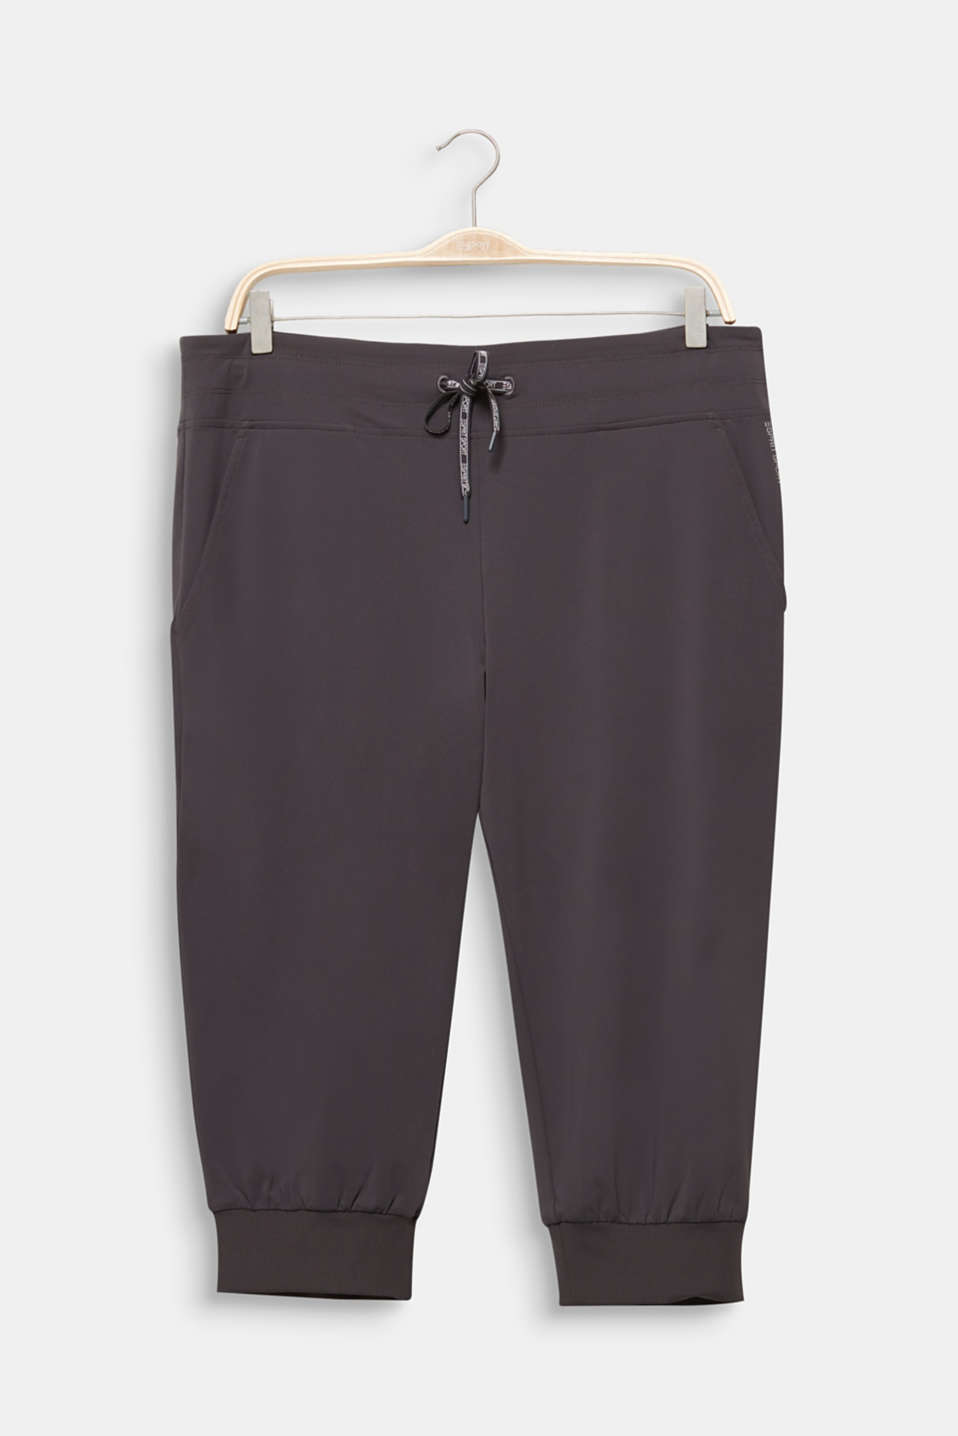 CURVY ankle-length leggings, E-DRY, ANTHRACITE, detail image number 7